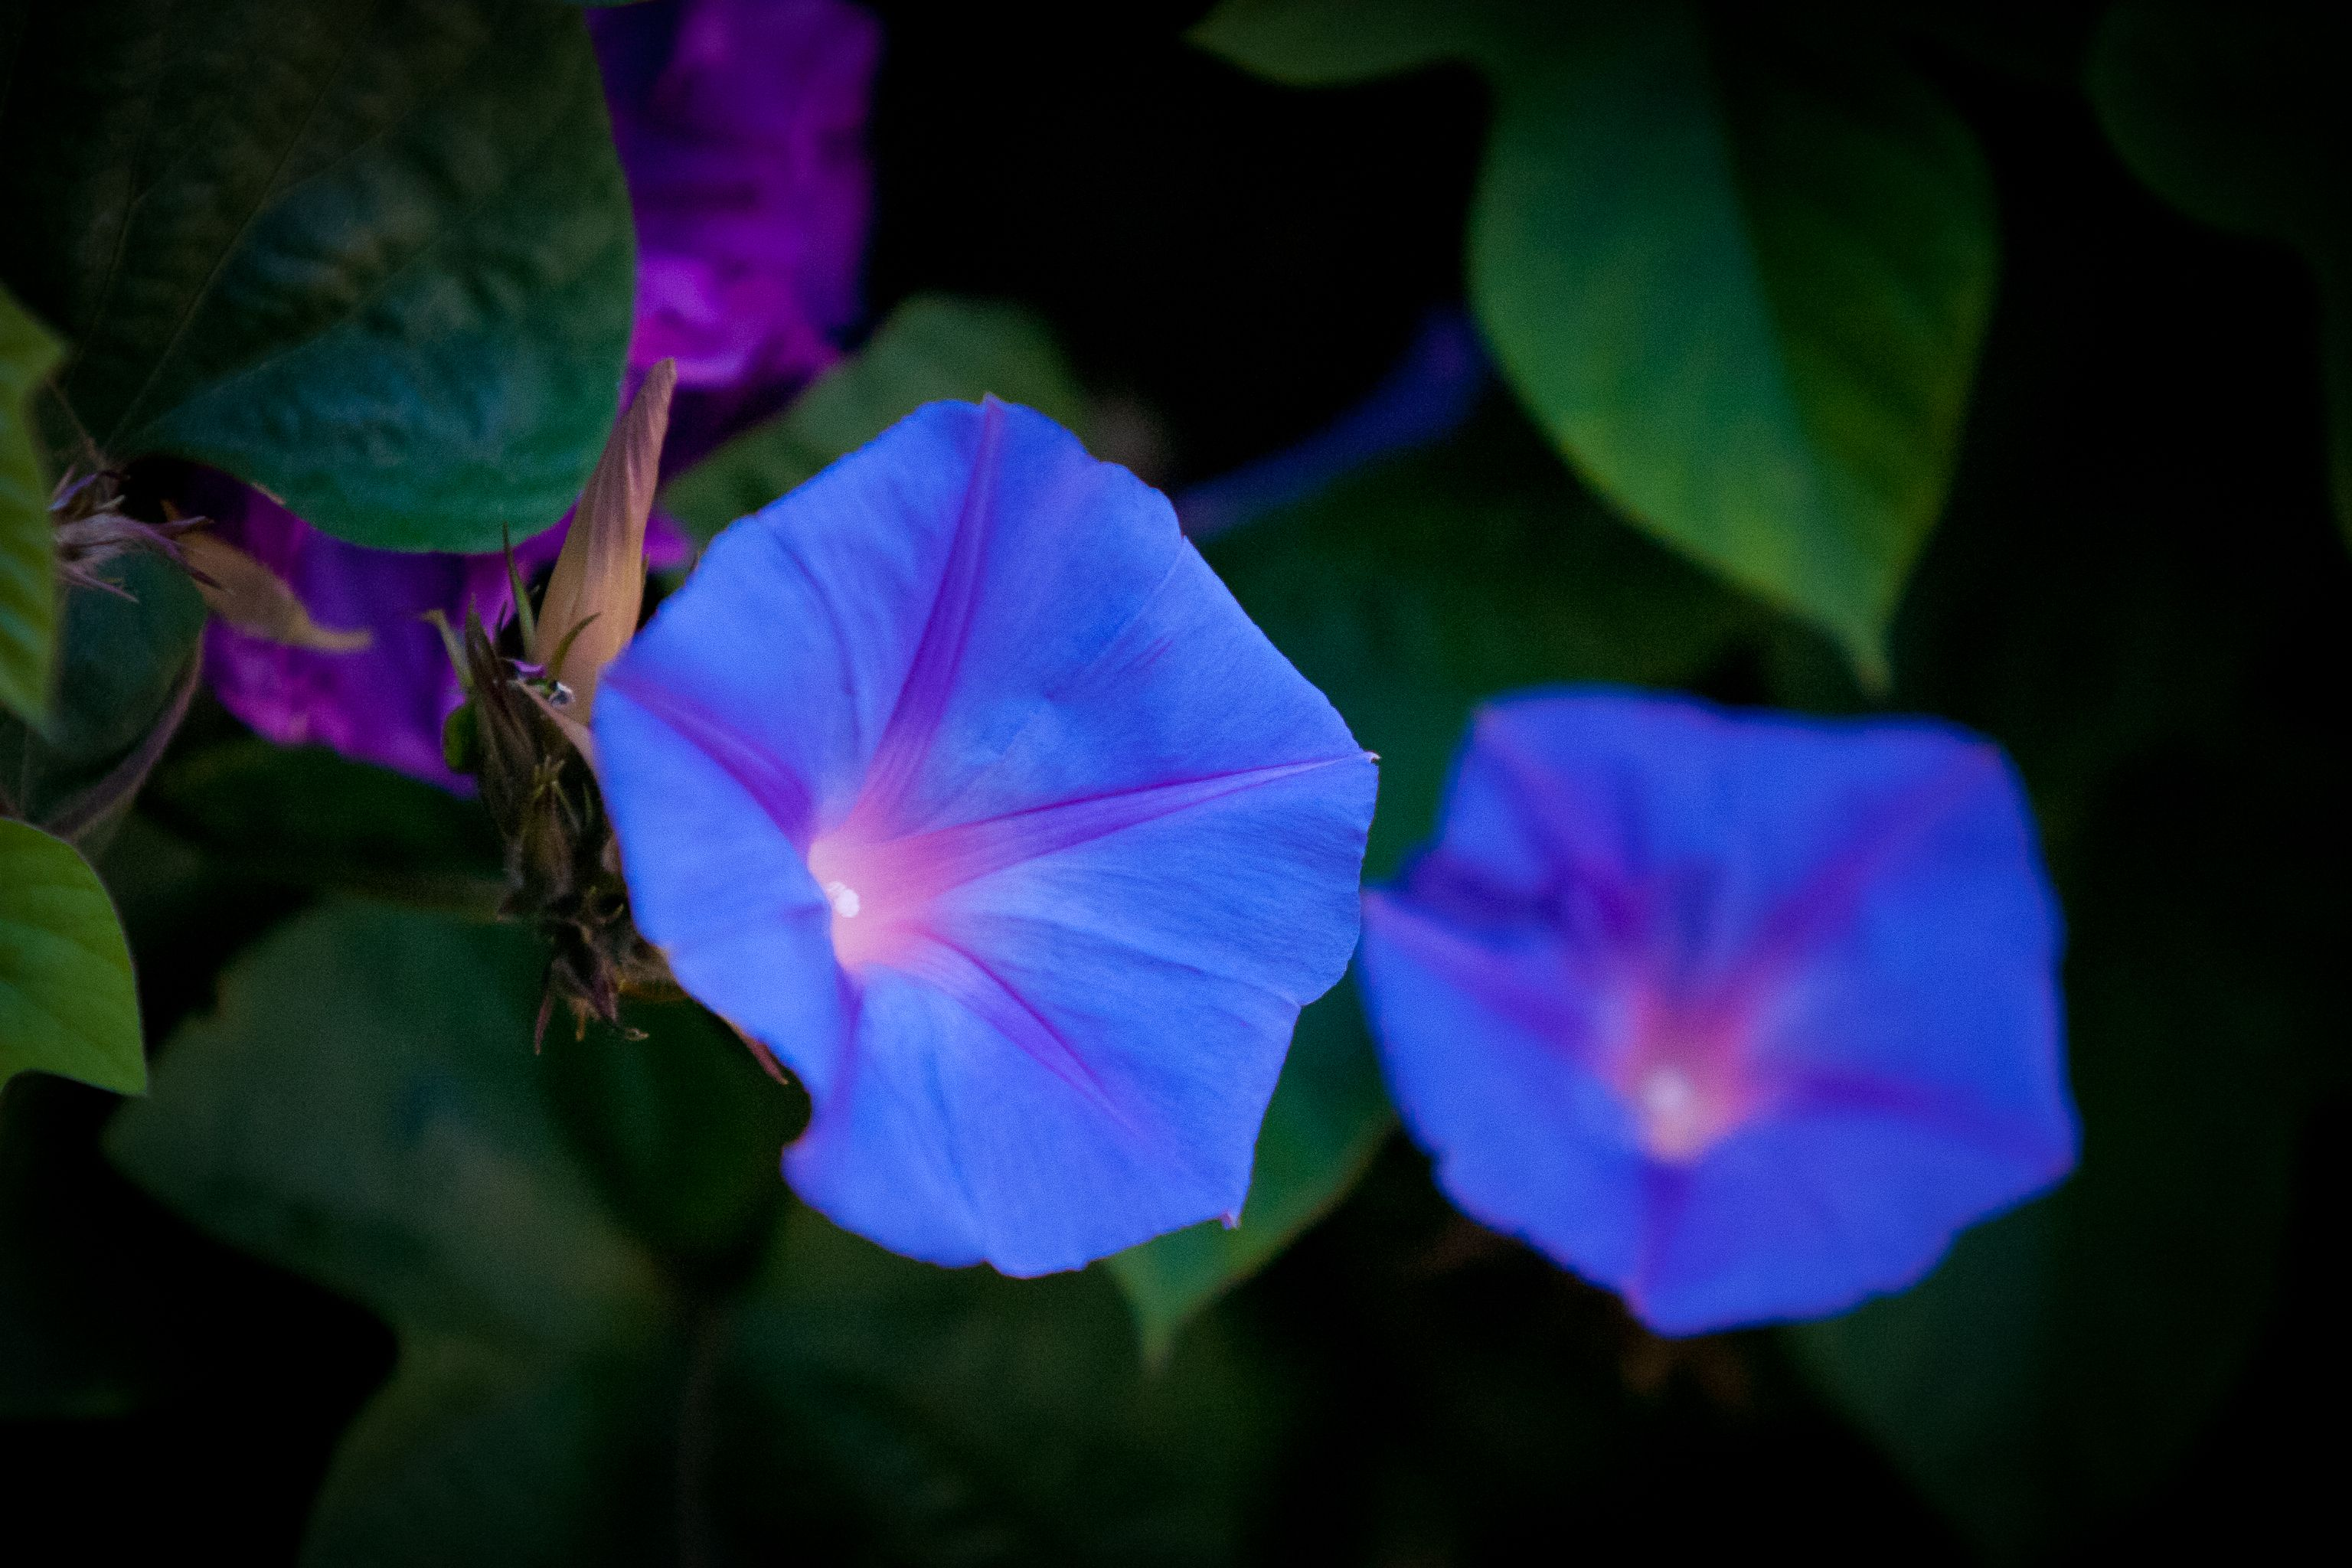 Blue Morning Glory By Kristen Ortwerth Jewell On Flickr Blue Morning Glory Amazing Flowers Morning Glory